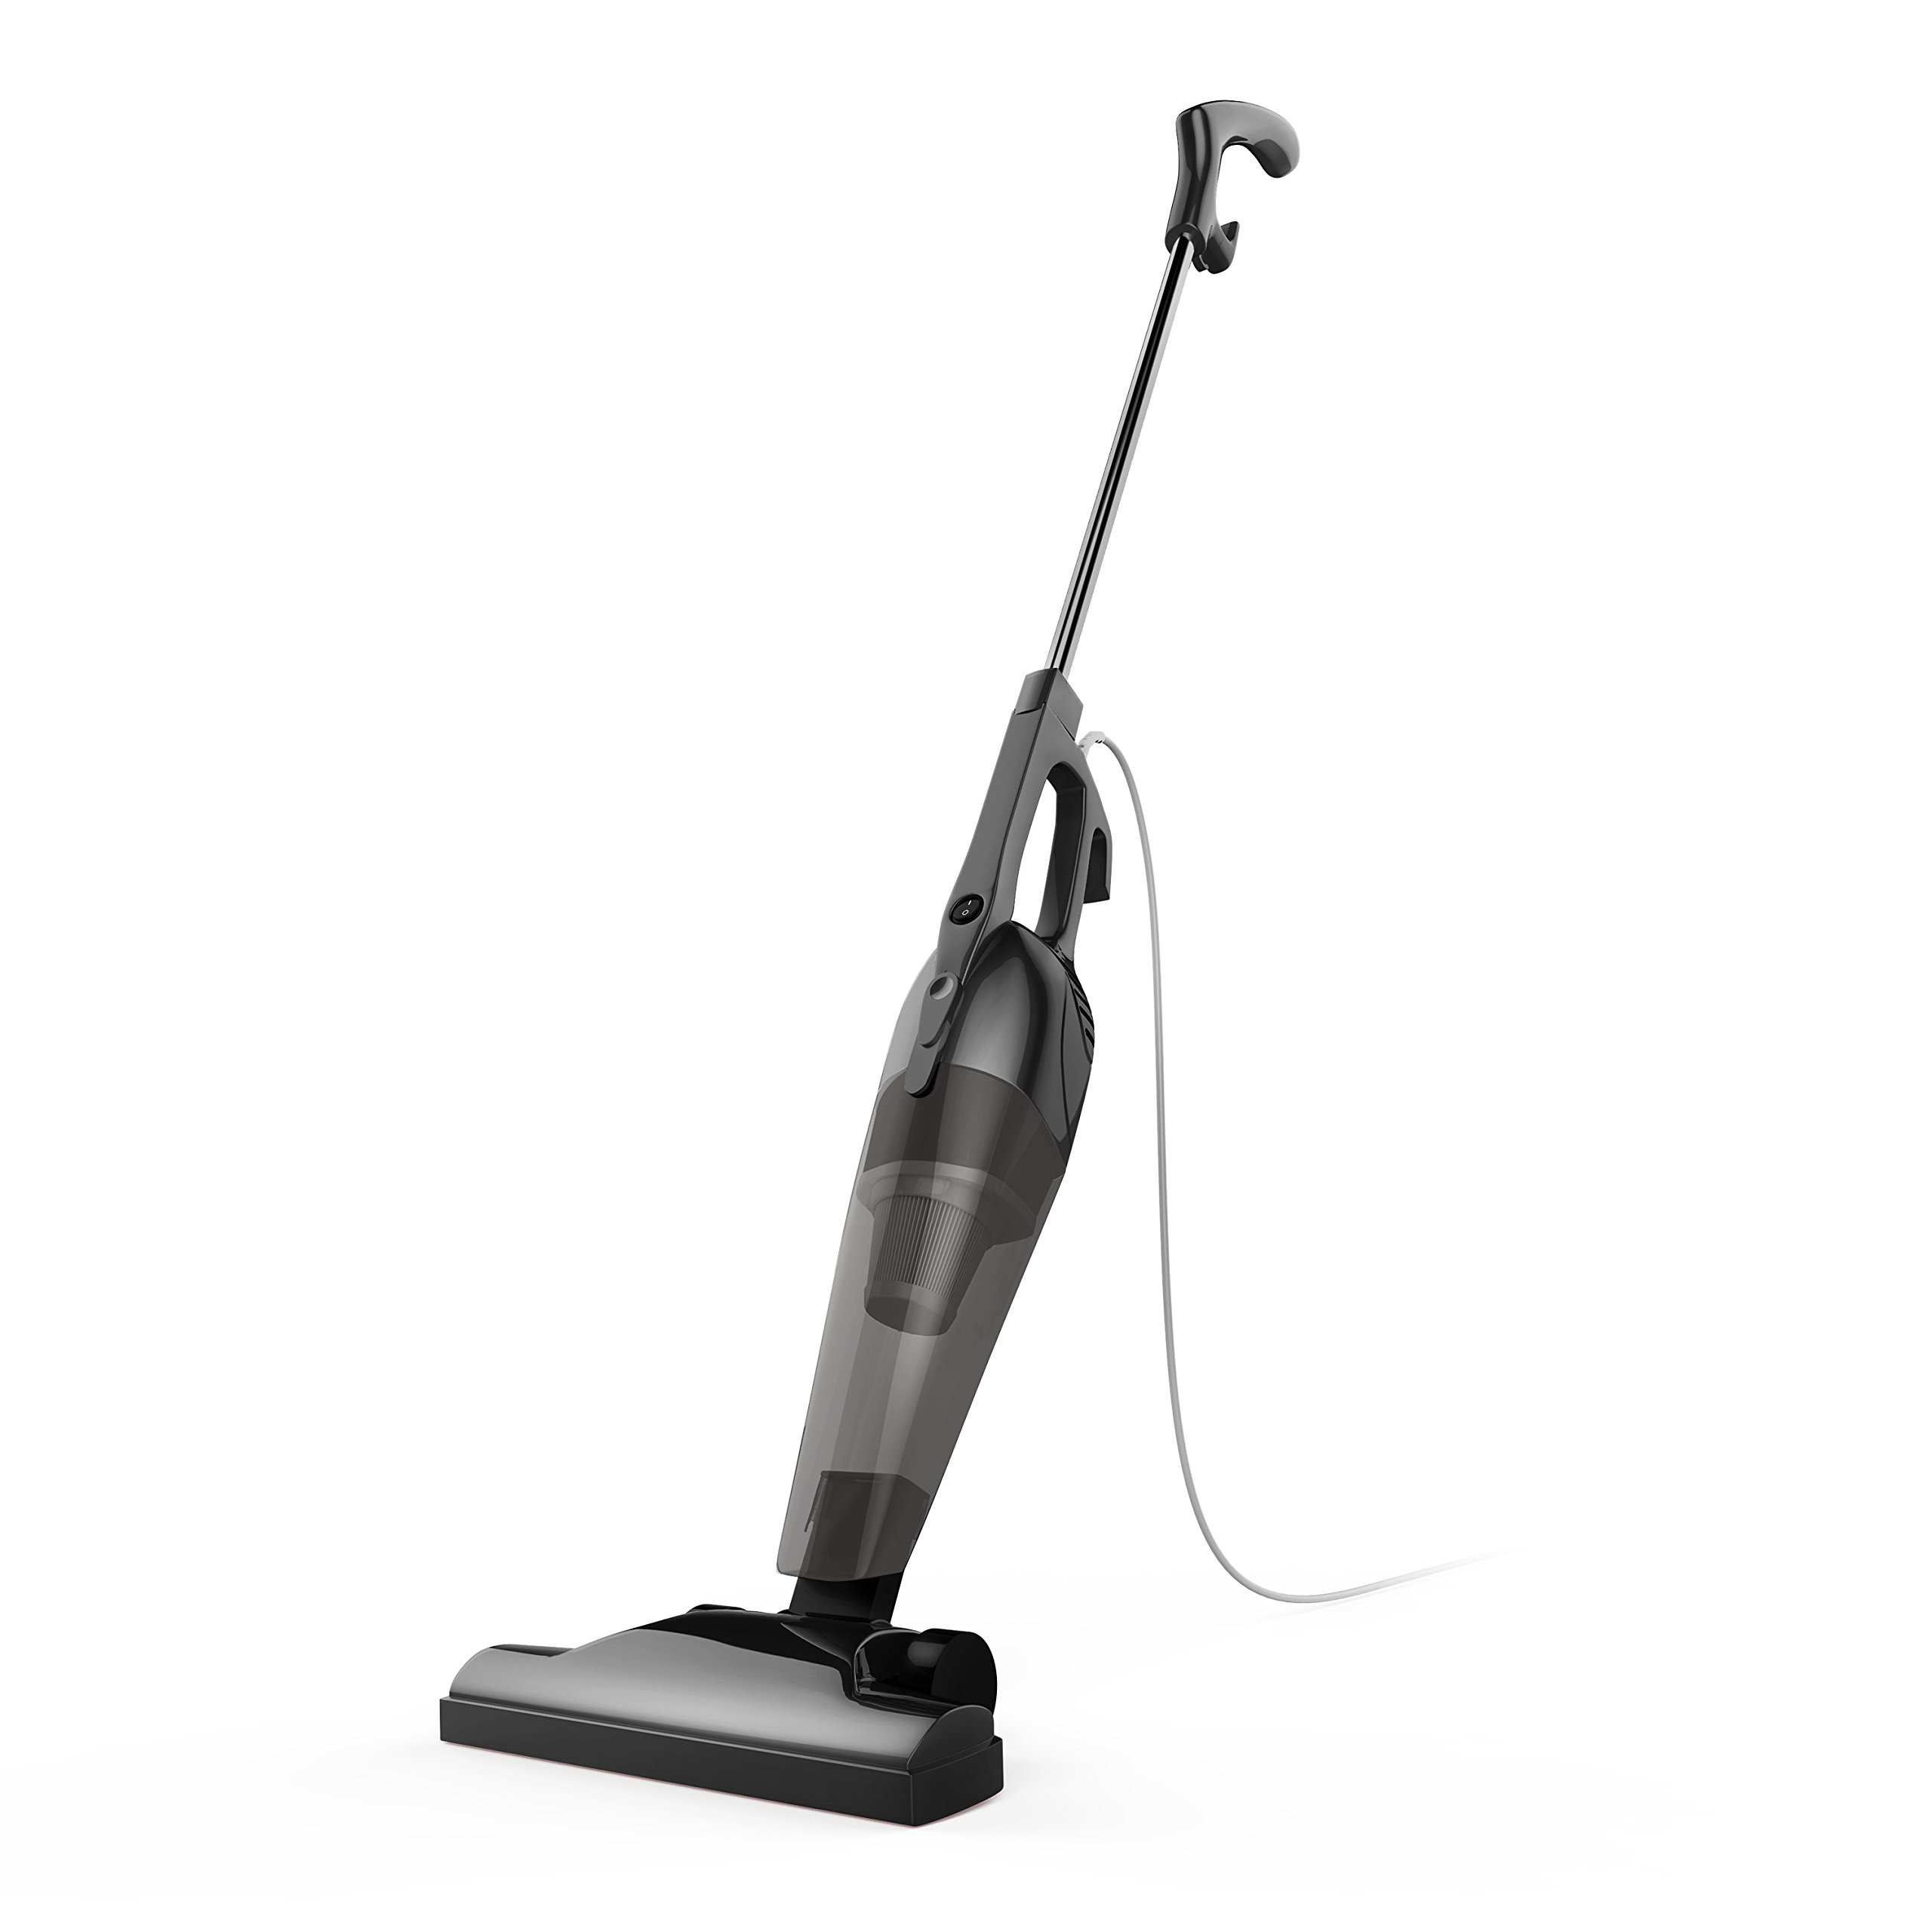 Best Rated Stick Vacuums Amp Electric Brooms Helpful Customer Reviews Amazon